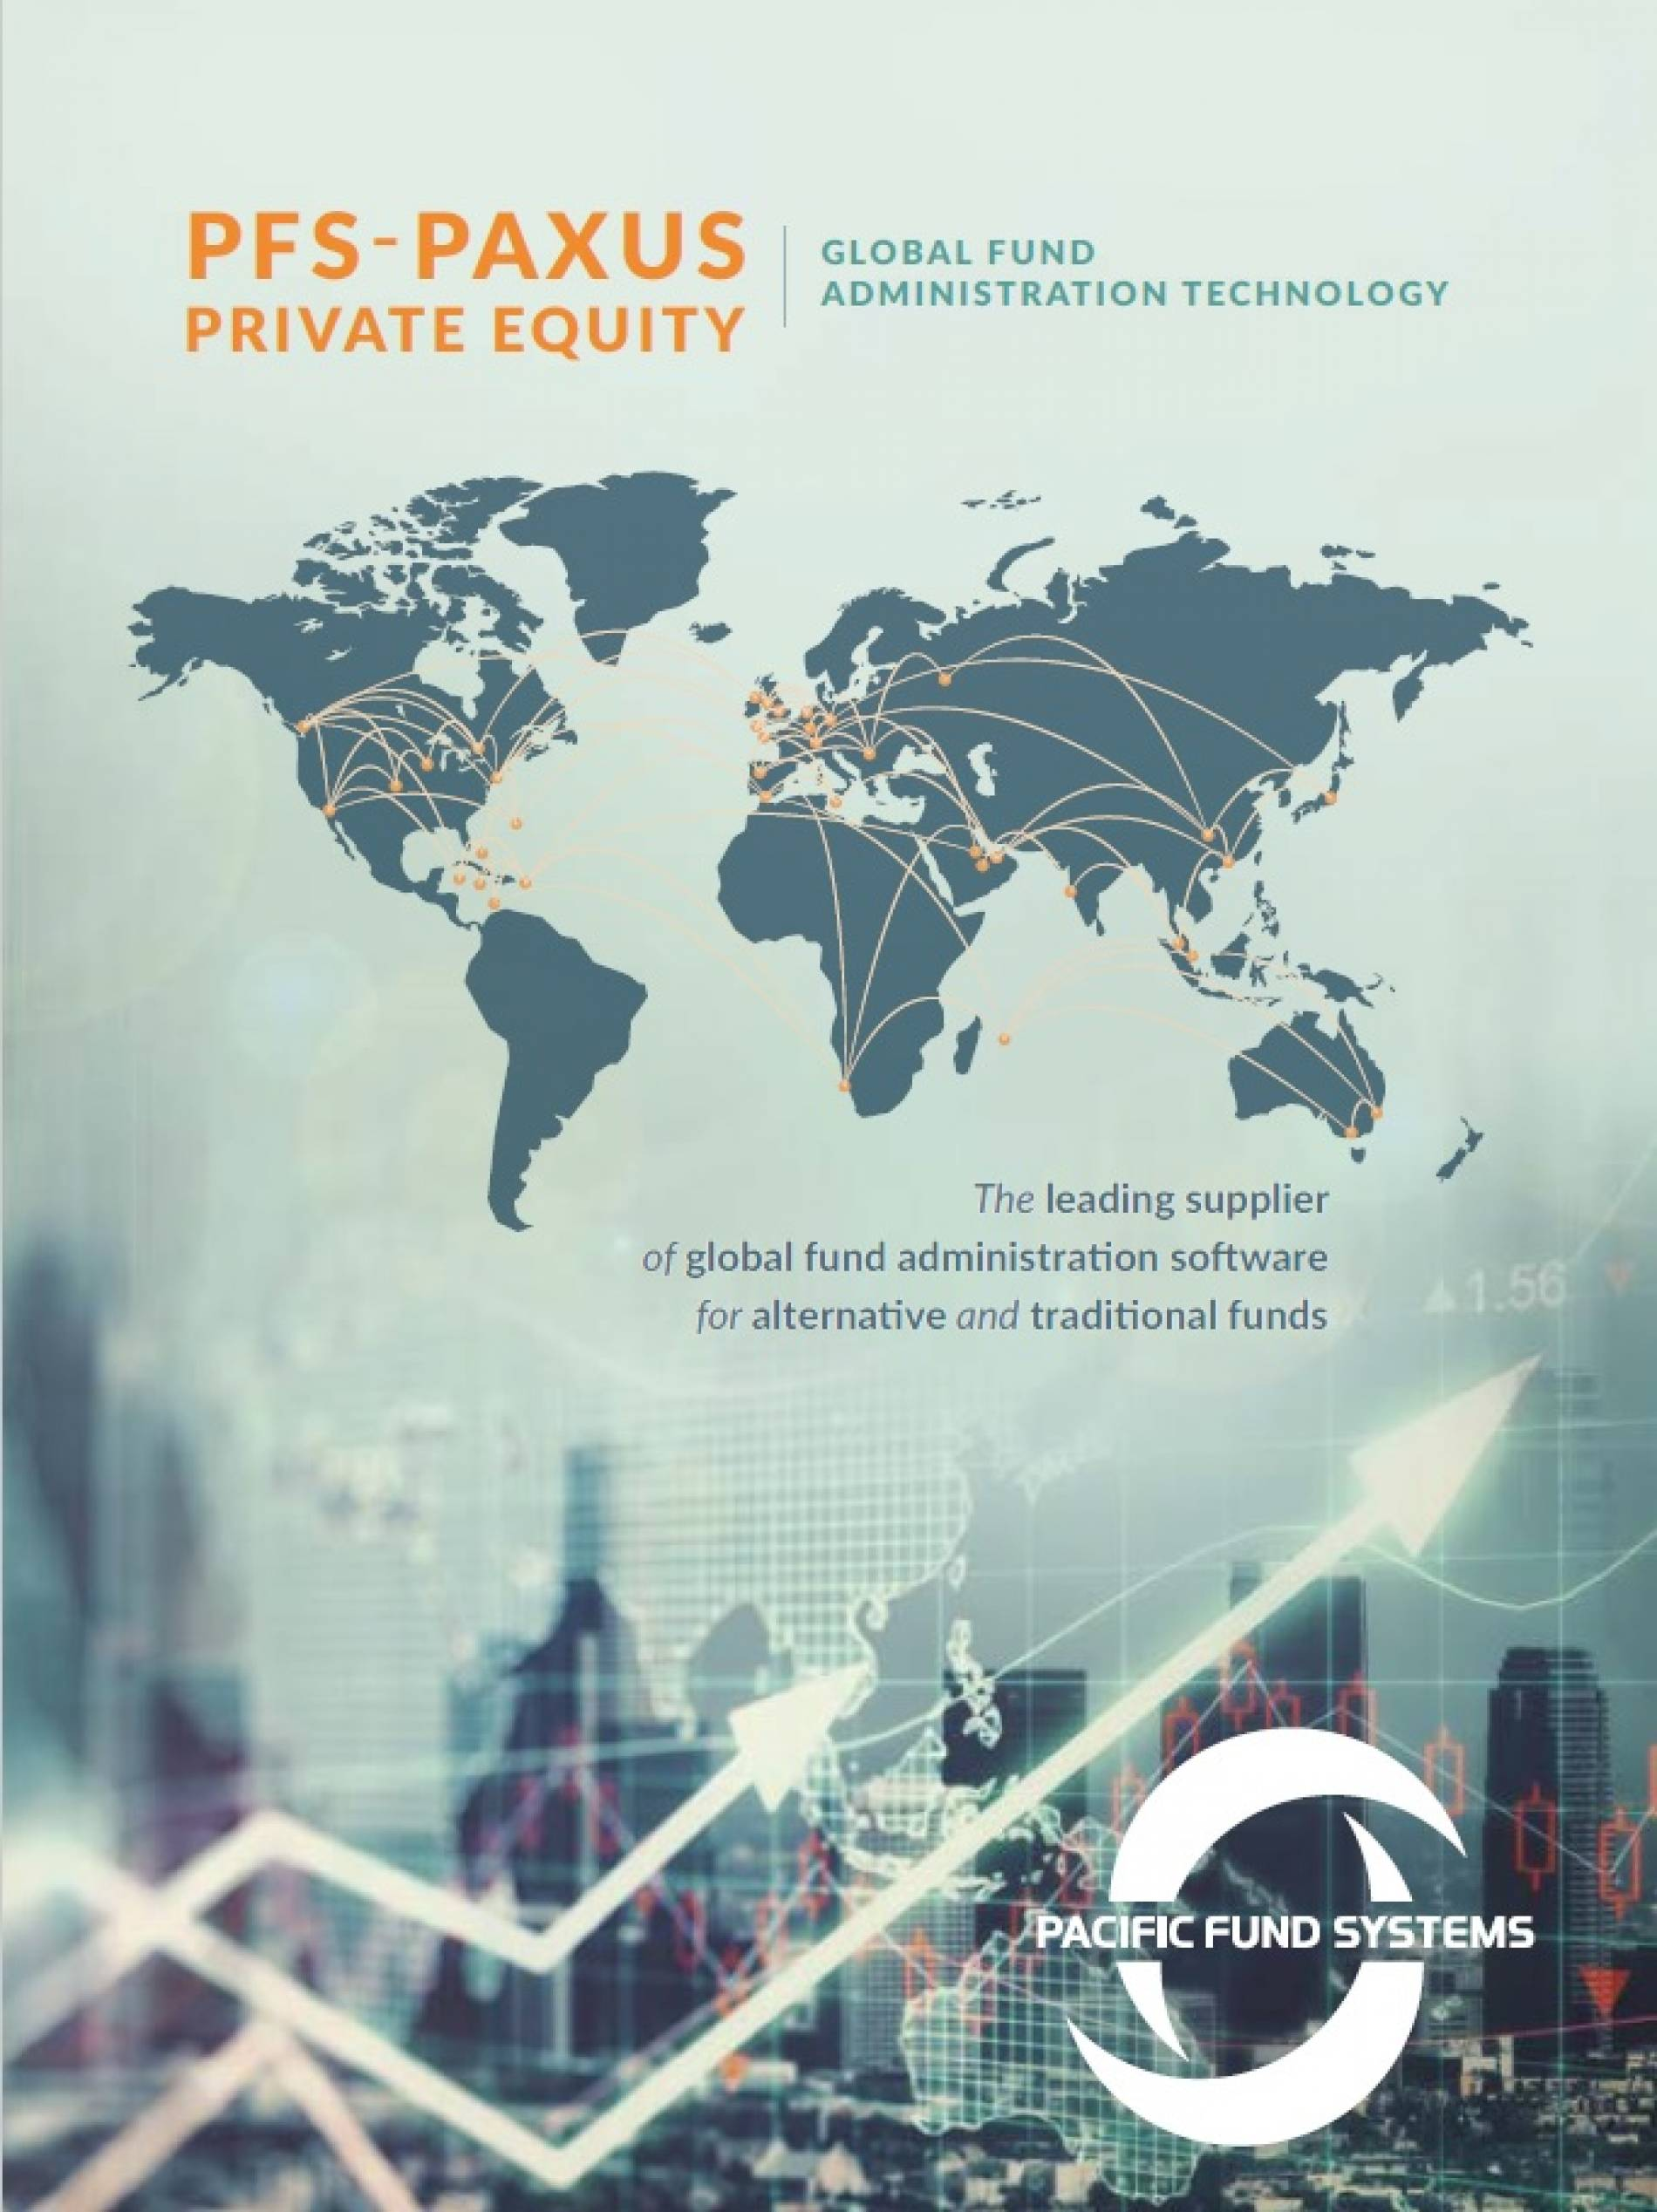 pfs-paxus-private-equity